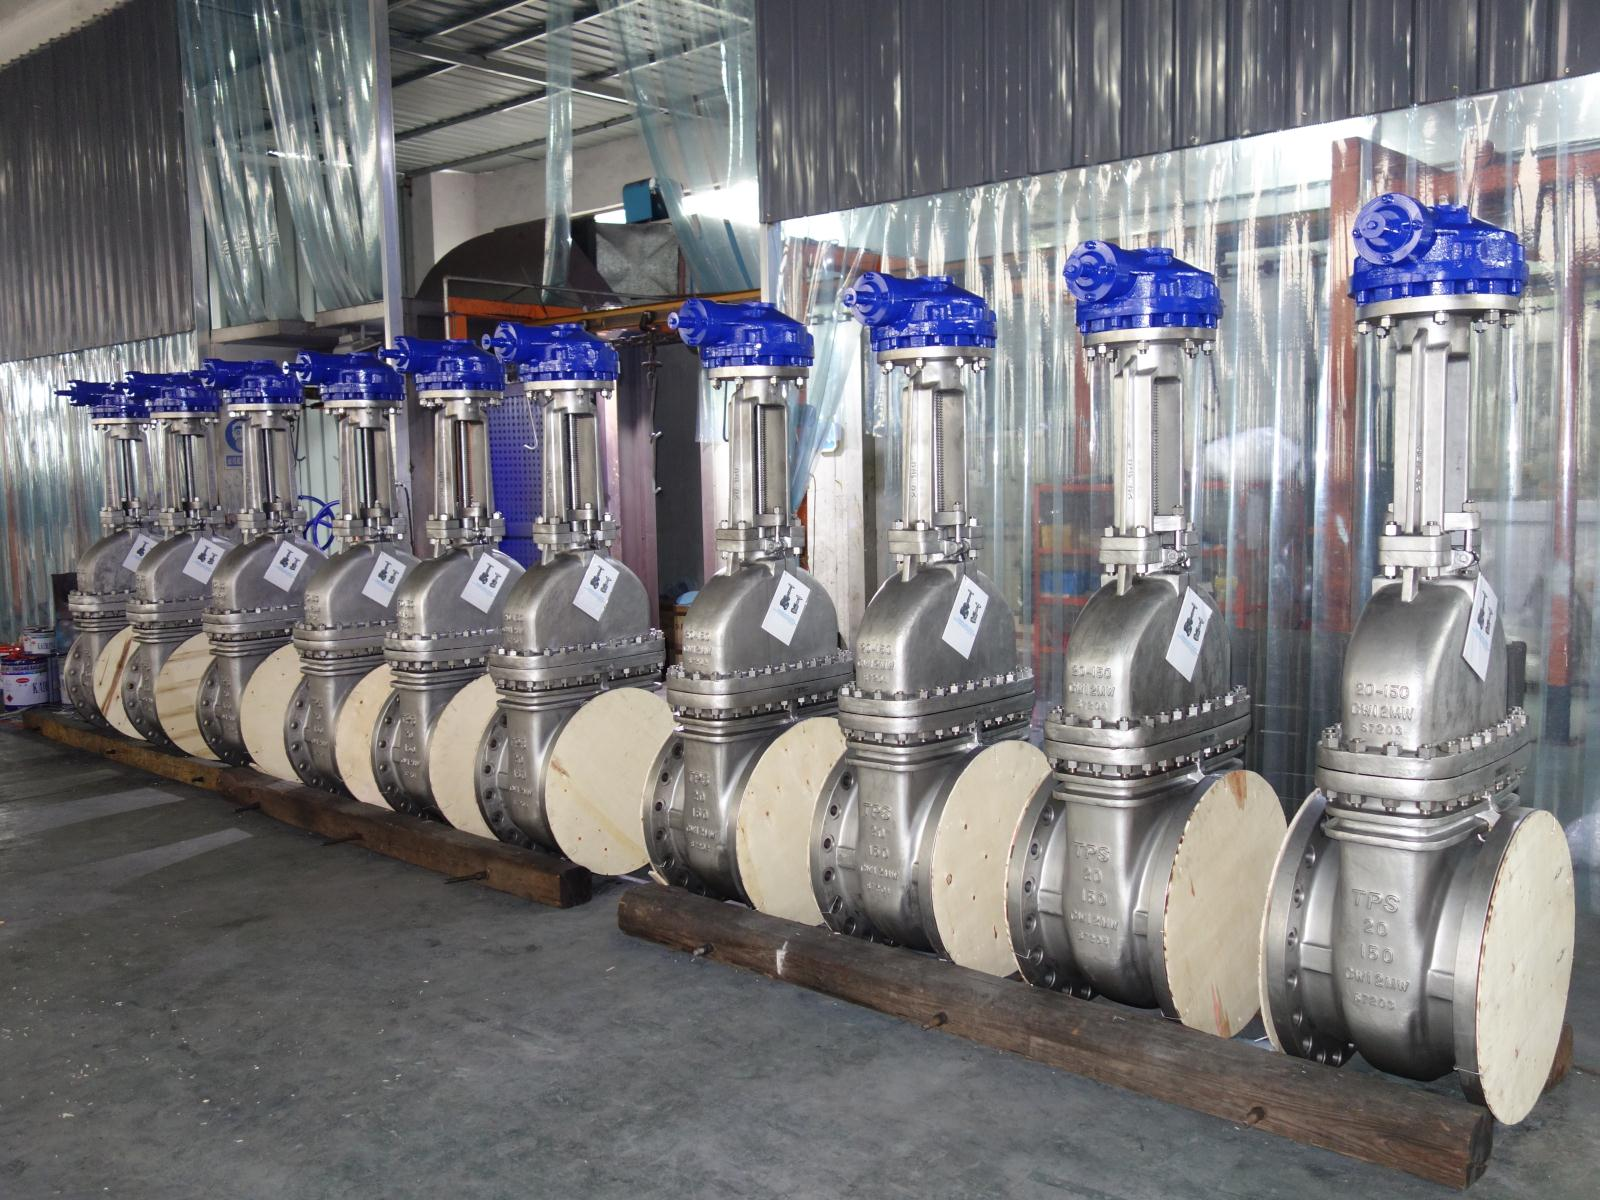 Gate Valves Made of the Special Material of Hastelloy C276